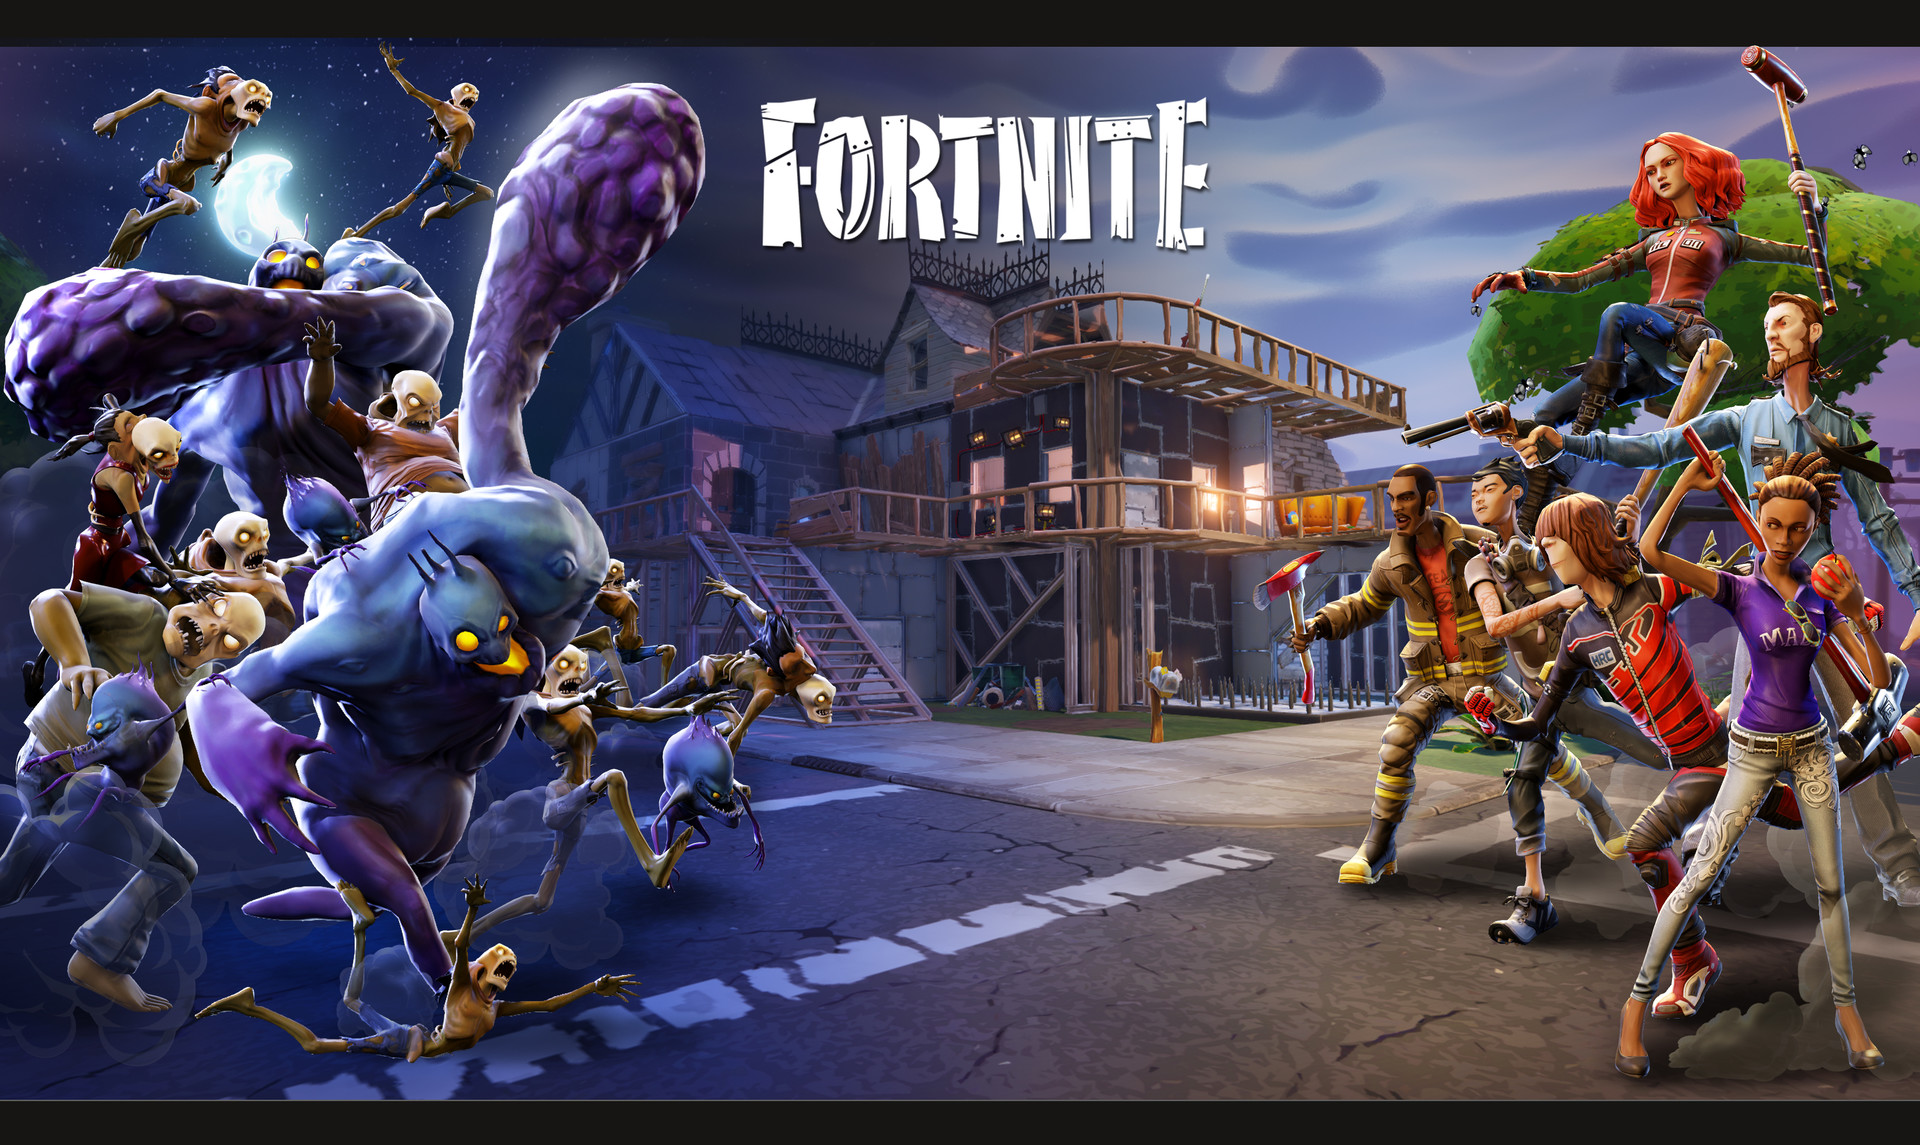 Fortnite Wallpapers Fortnite Scoop Skins Leaks Challenges More